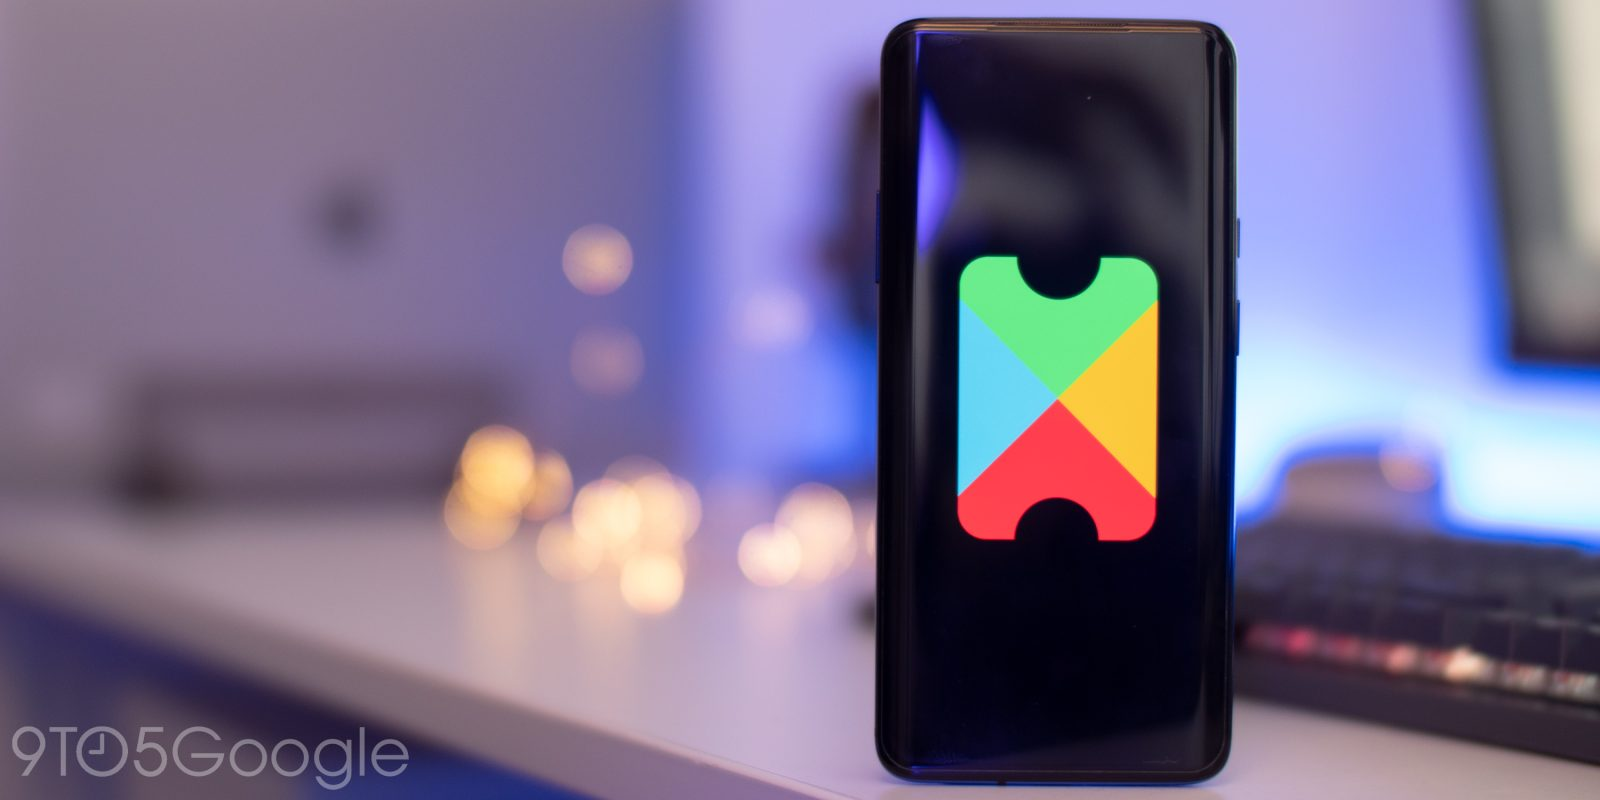 Google Play Pass explained: Android TV support, $1.99/month promo, buying apps, developers